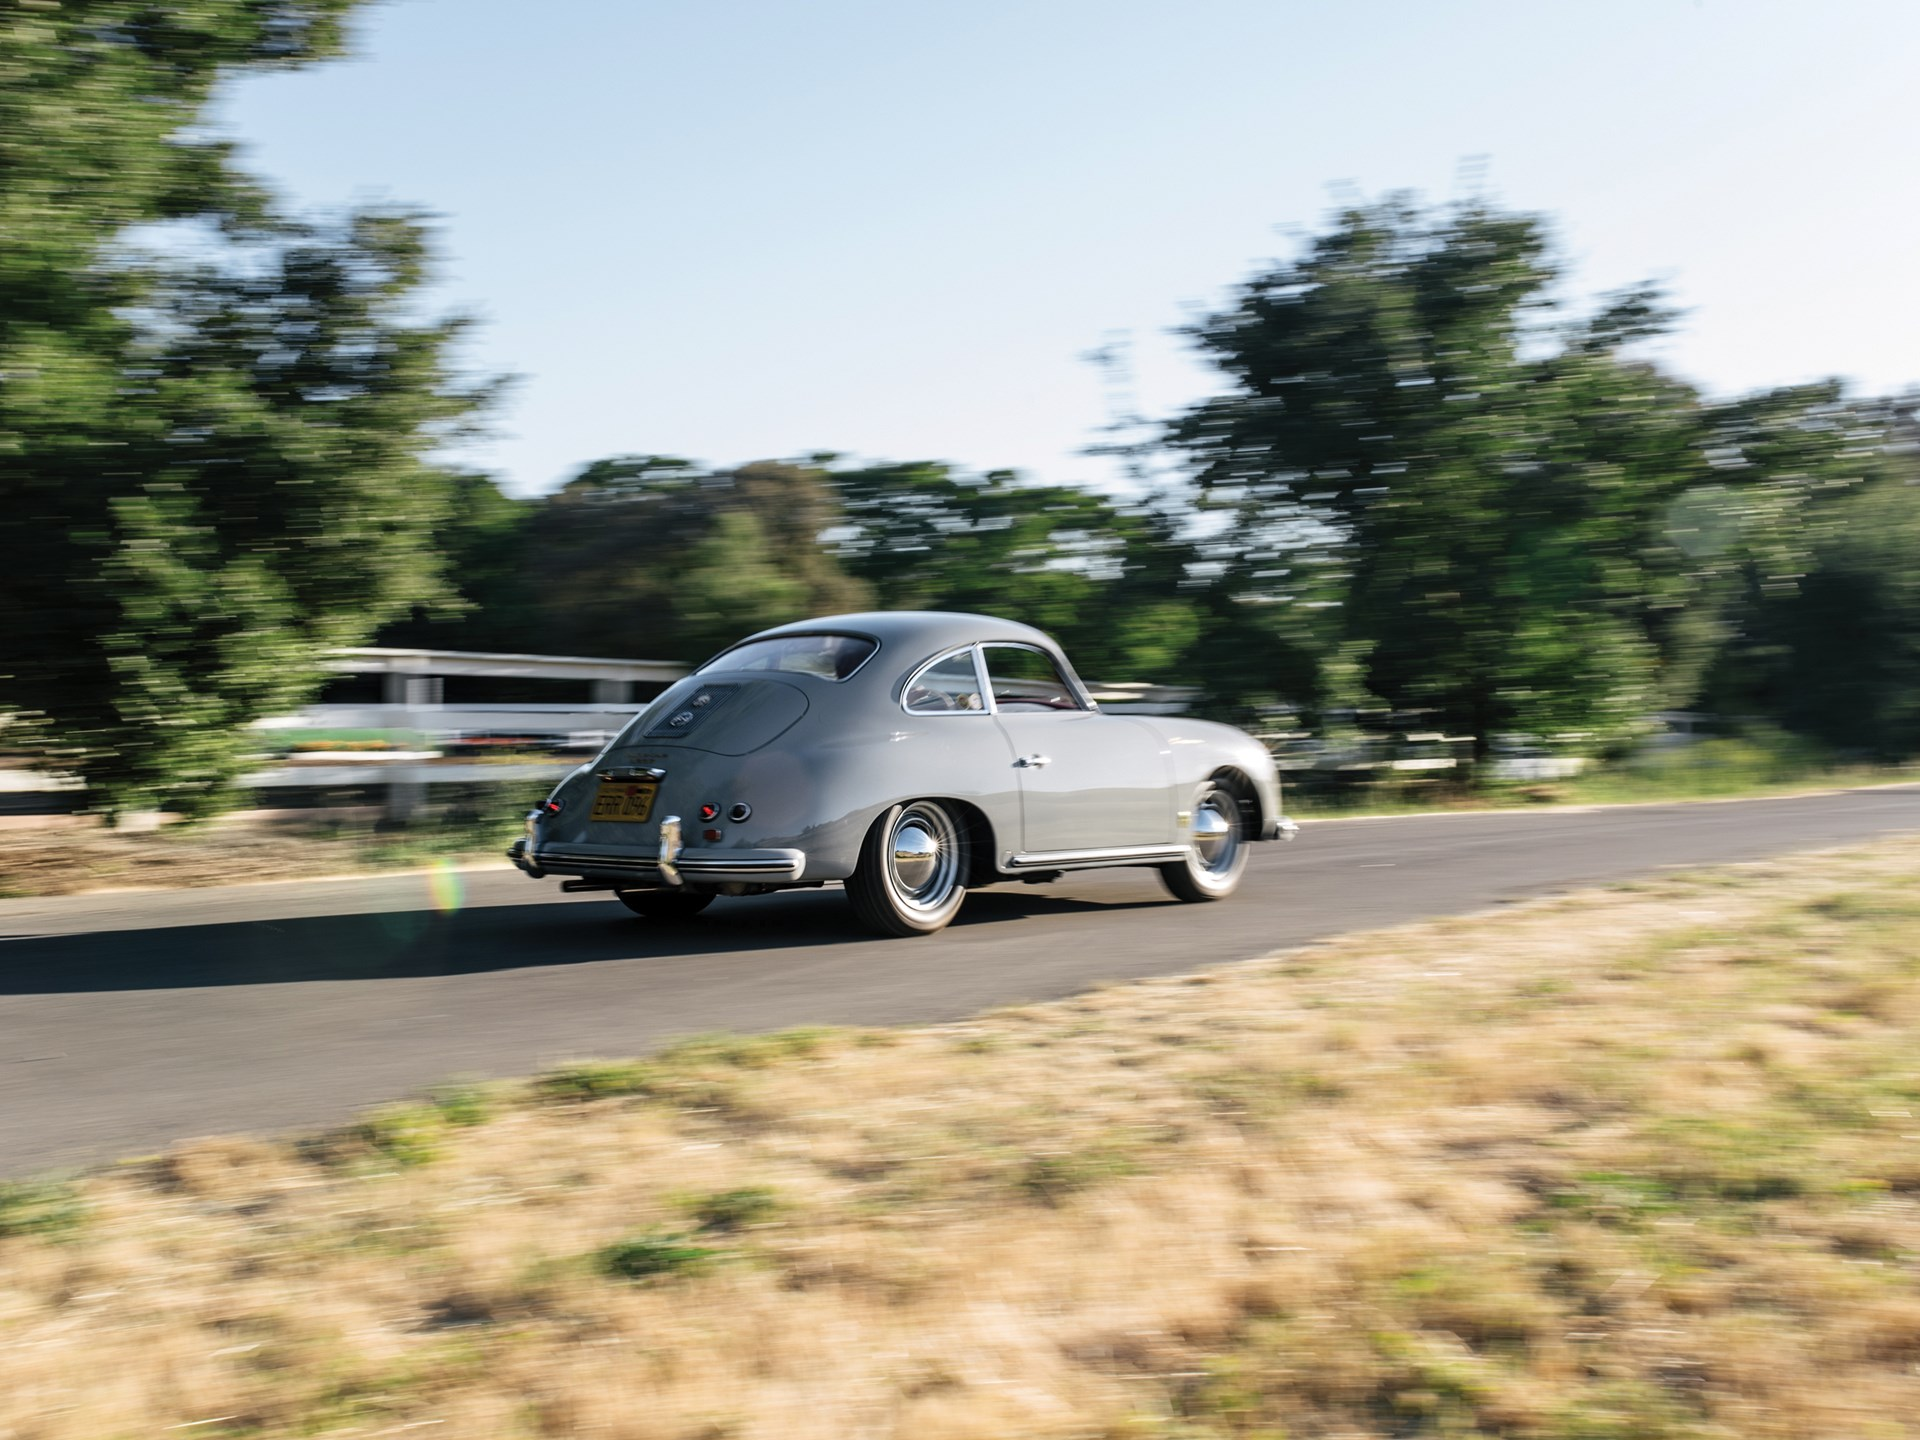 1956 Porsche 356 A European Coupe by Reutter